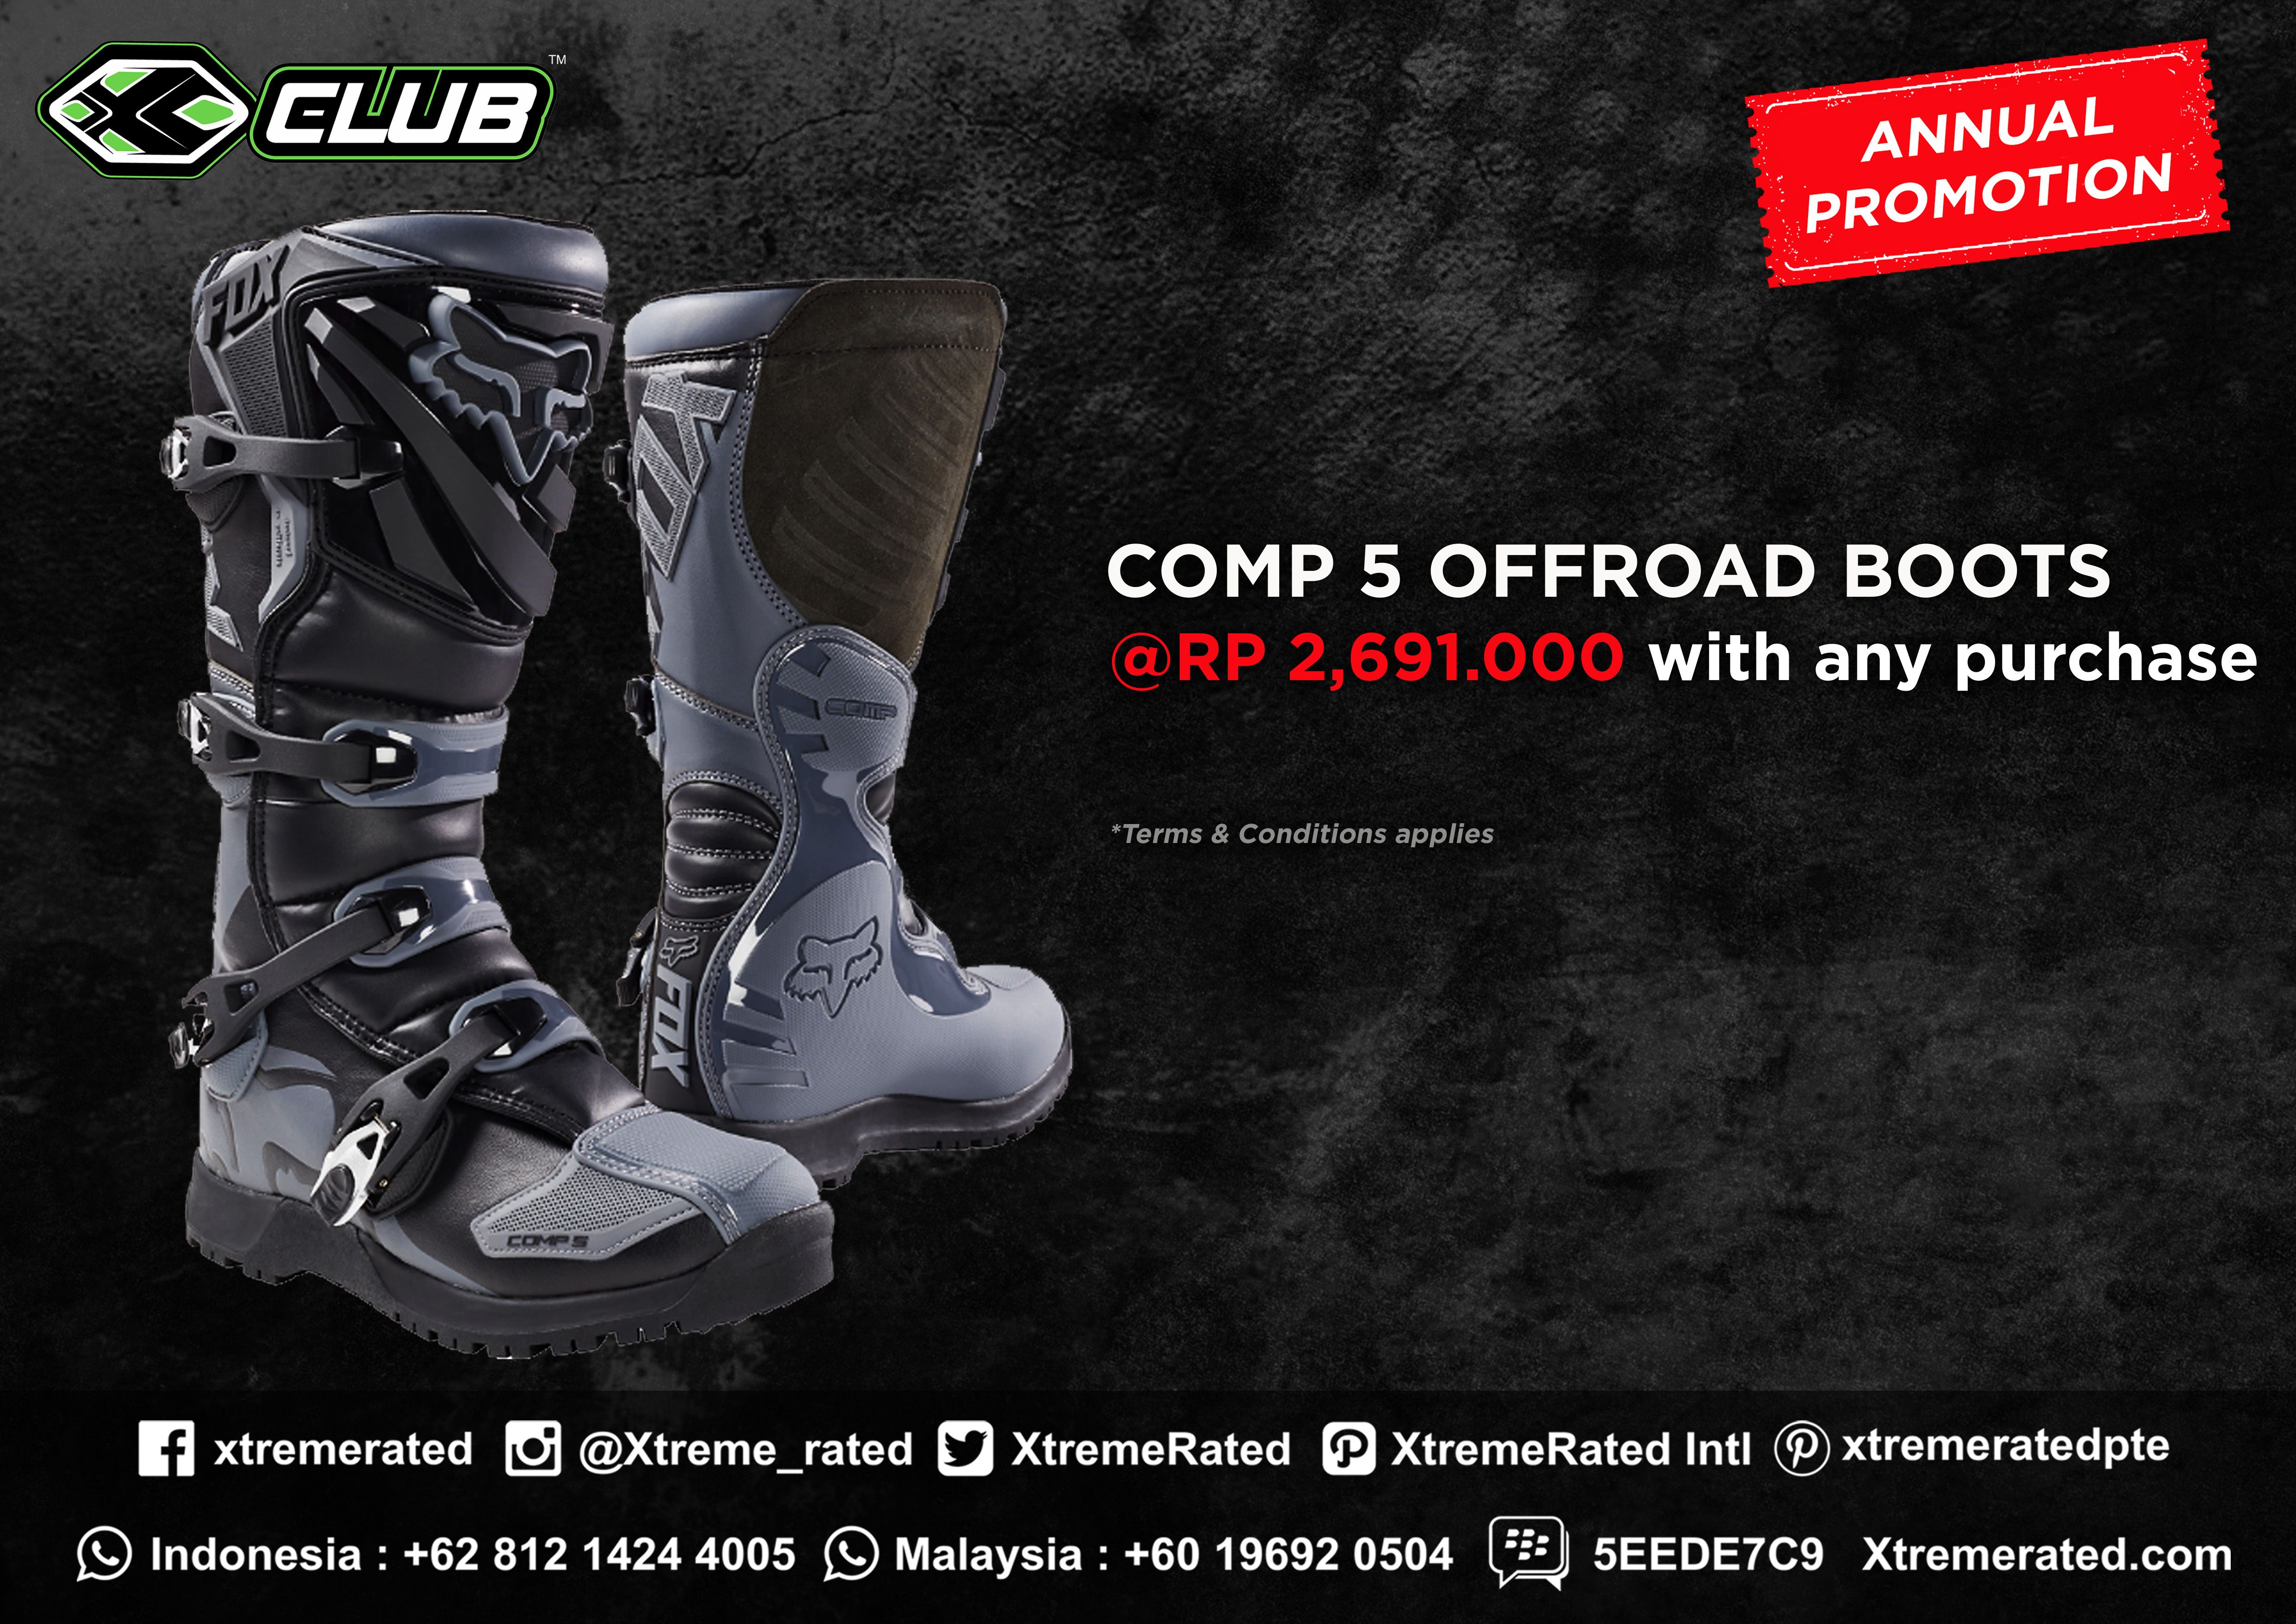 Annual Promotion Fox Comp 5 Offroad Boots Only Rp2 691 000 With Any Purchase Grab It Fast Available In All Xclub Leading Stores Xtremerated Xclub Foxracing